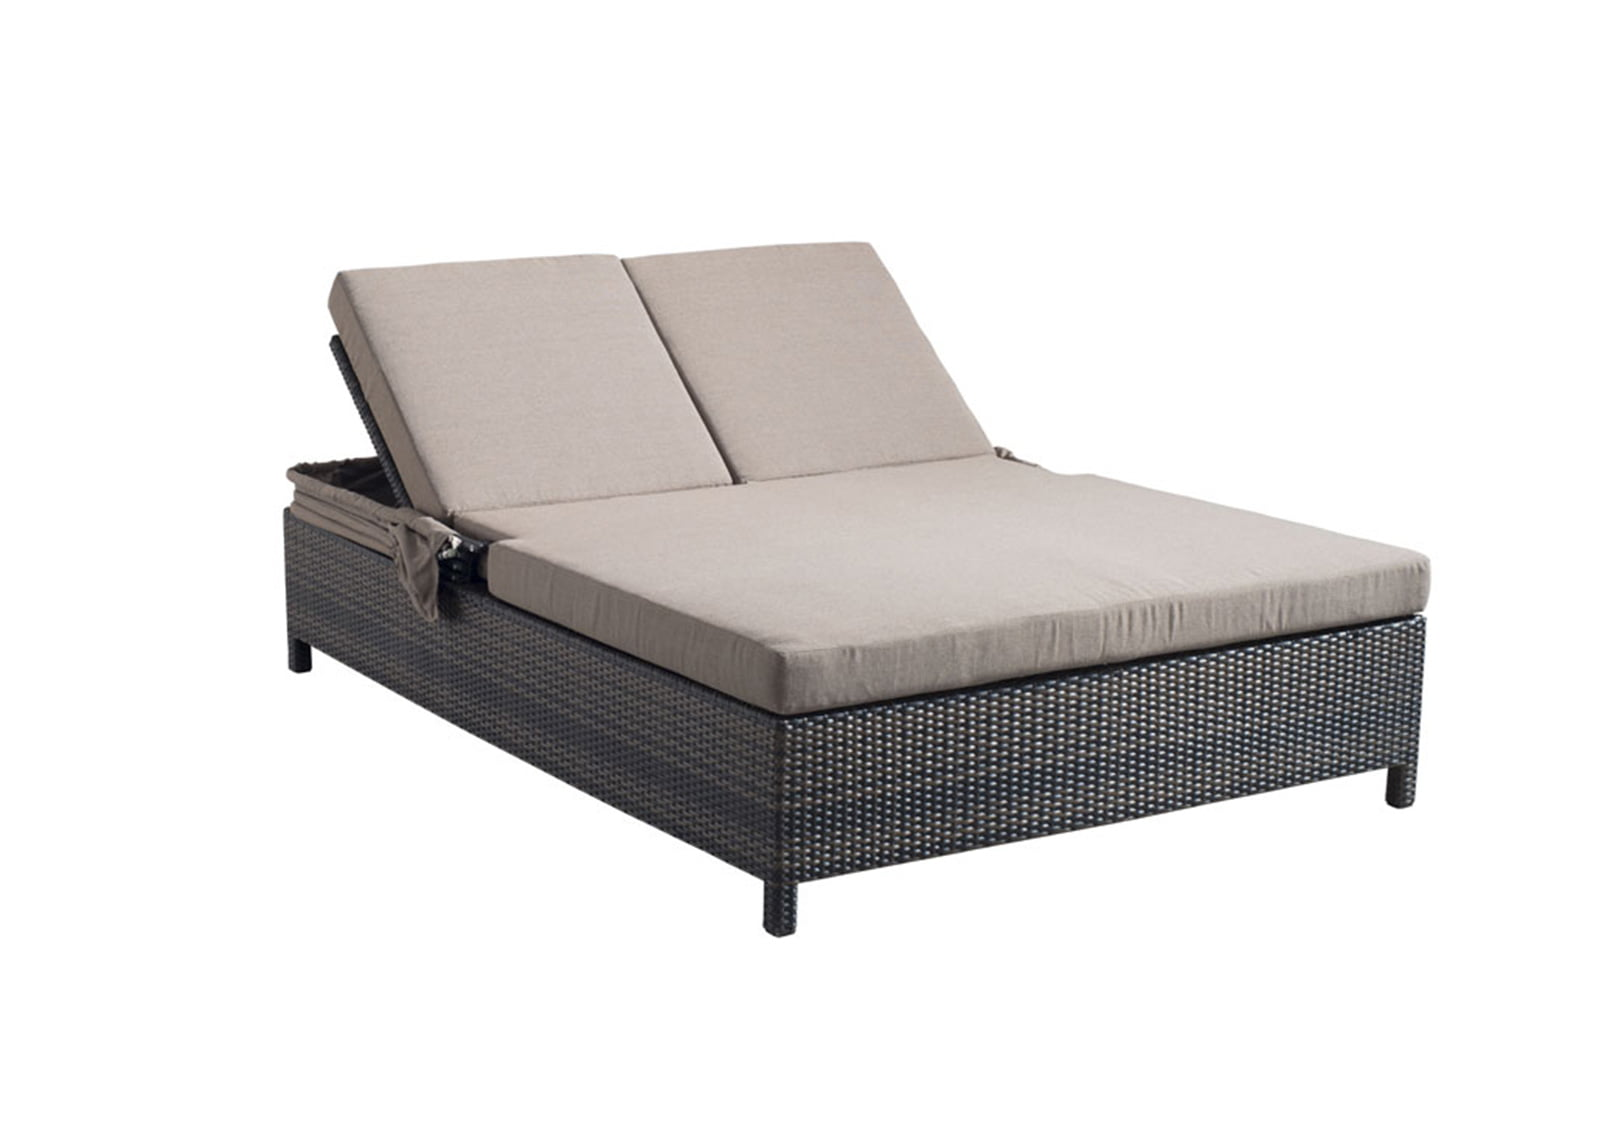 Siesta key double chaise lounge espresso furnishplus for Chaise coffre